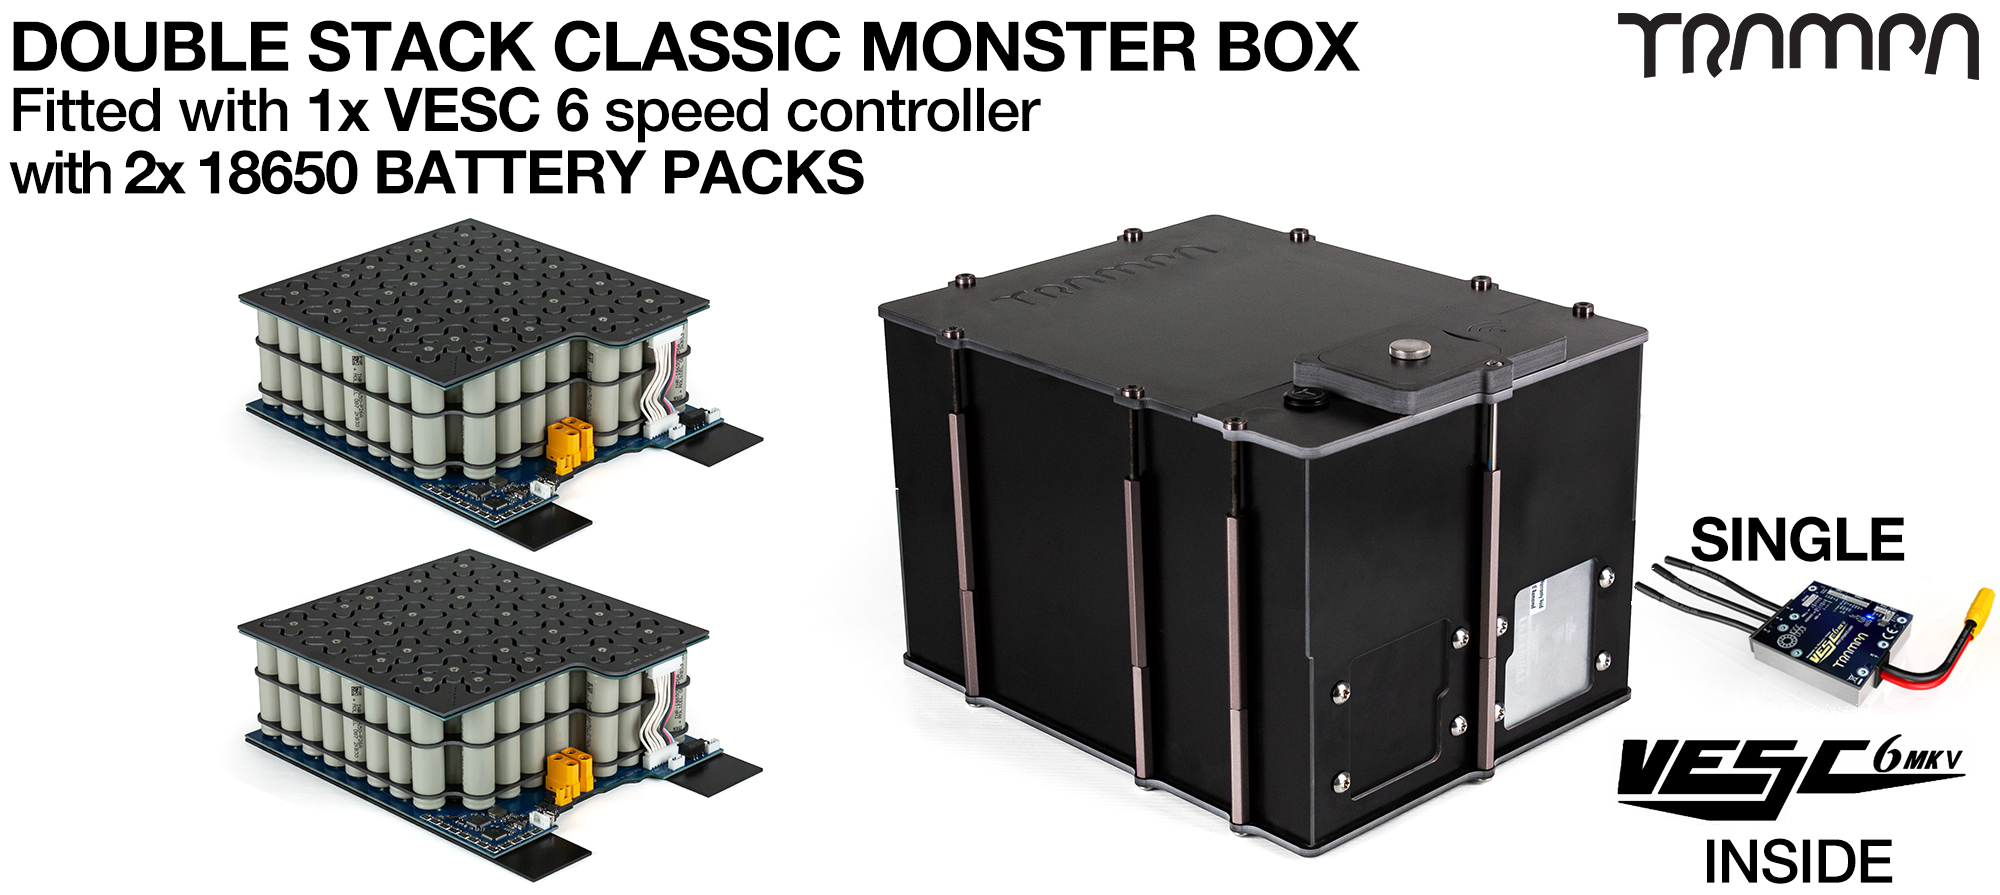 Classic MONSTER Box MkV DOUBLE STACKER - with 18650 PCB Pack, 1x VESC 6 with NRF & 84x 18650 cells 12s7p 21Ah - PCB based Battery Pack with Integrated Battery Management System (BMS) - UK CUSTOMERS ONLY